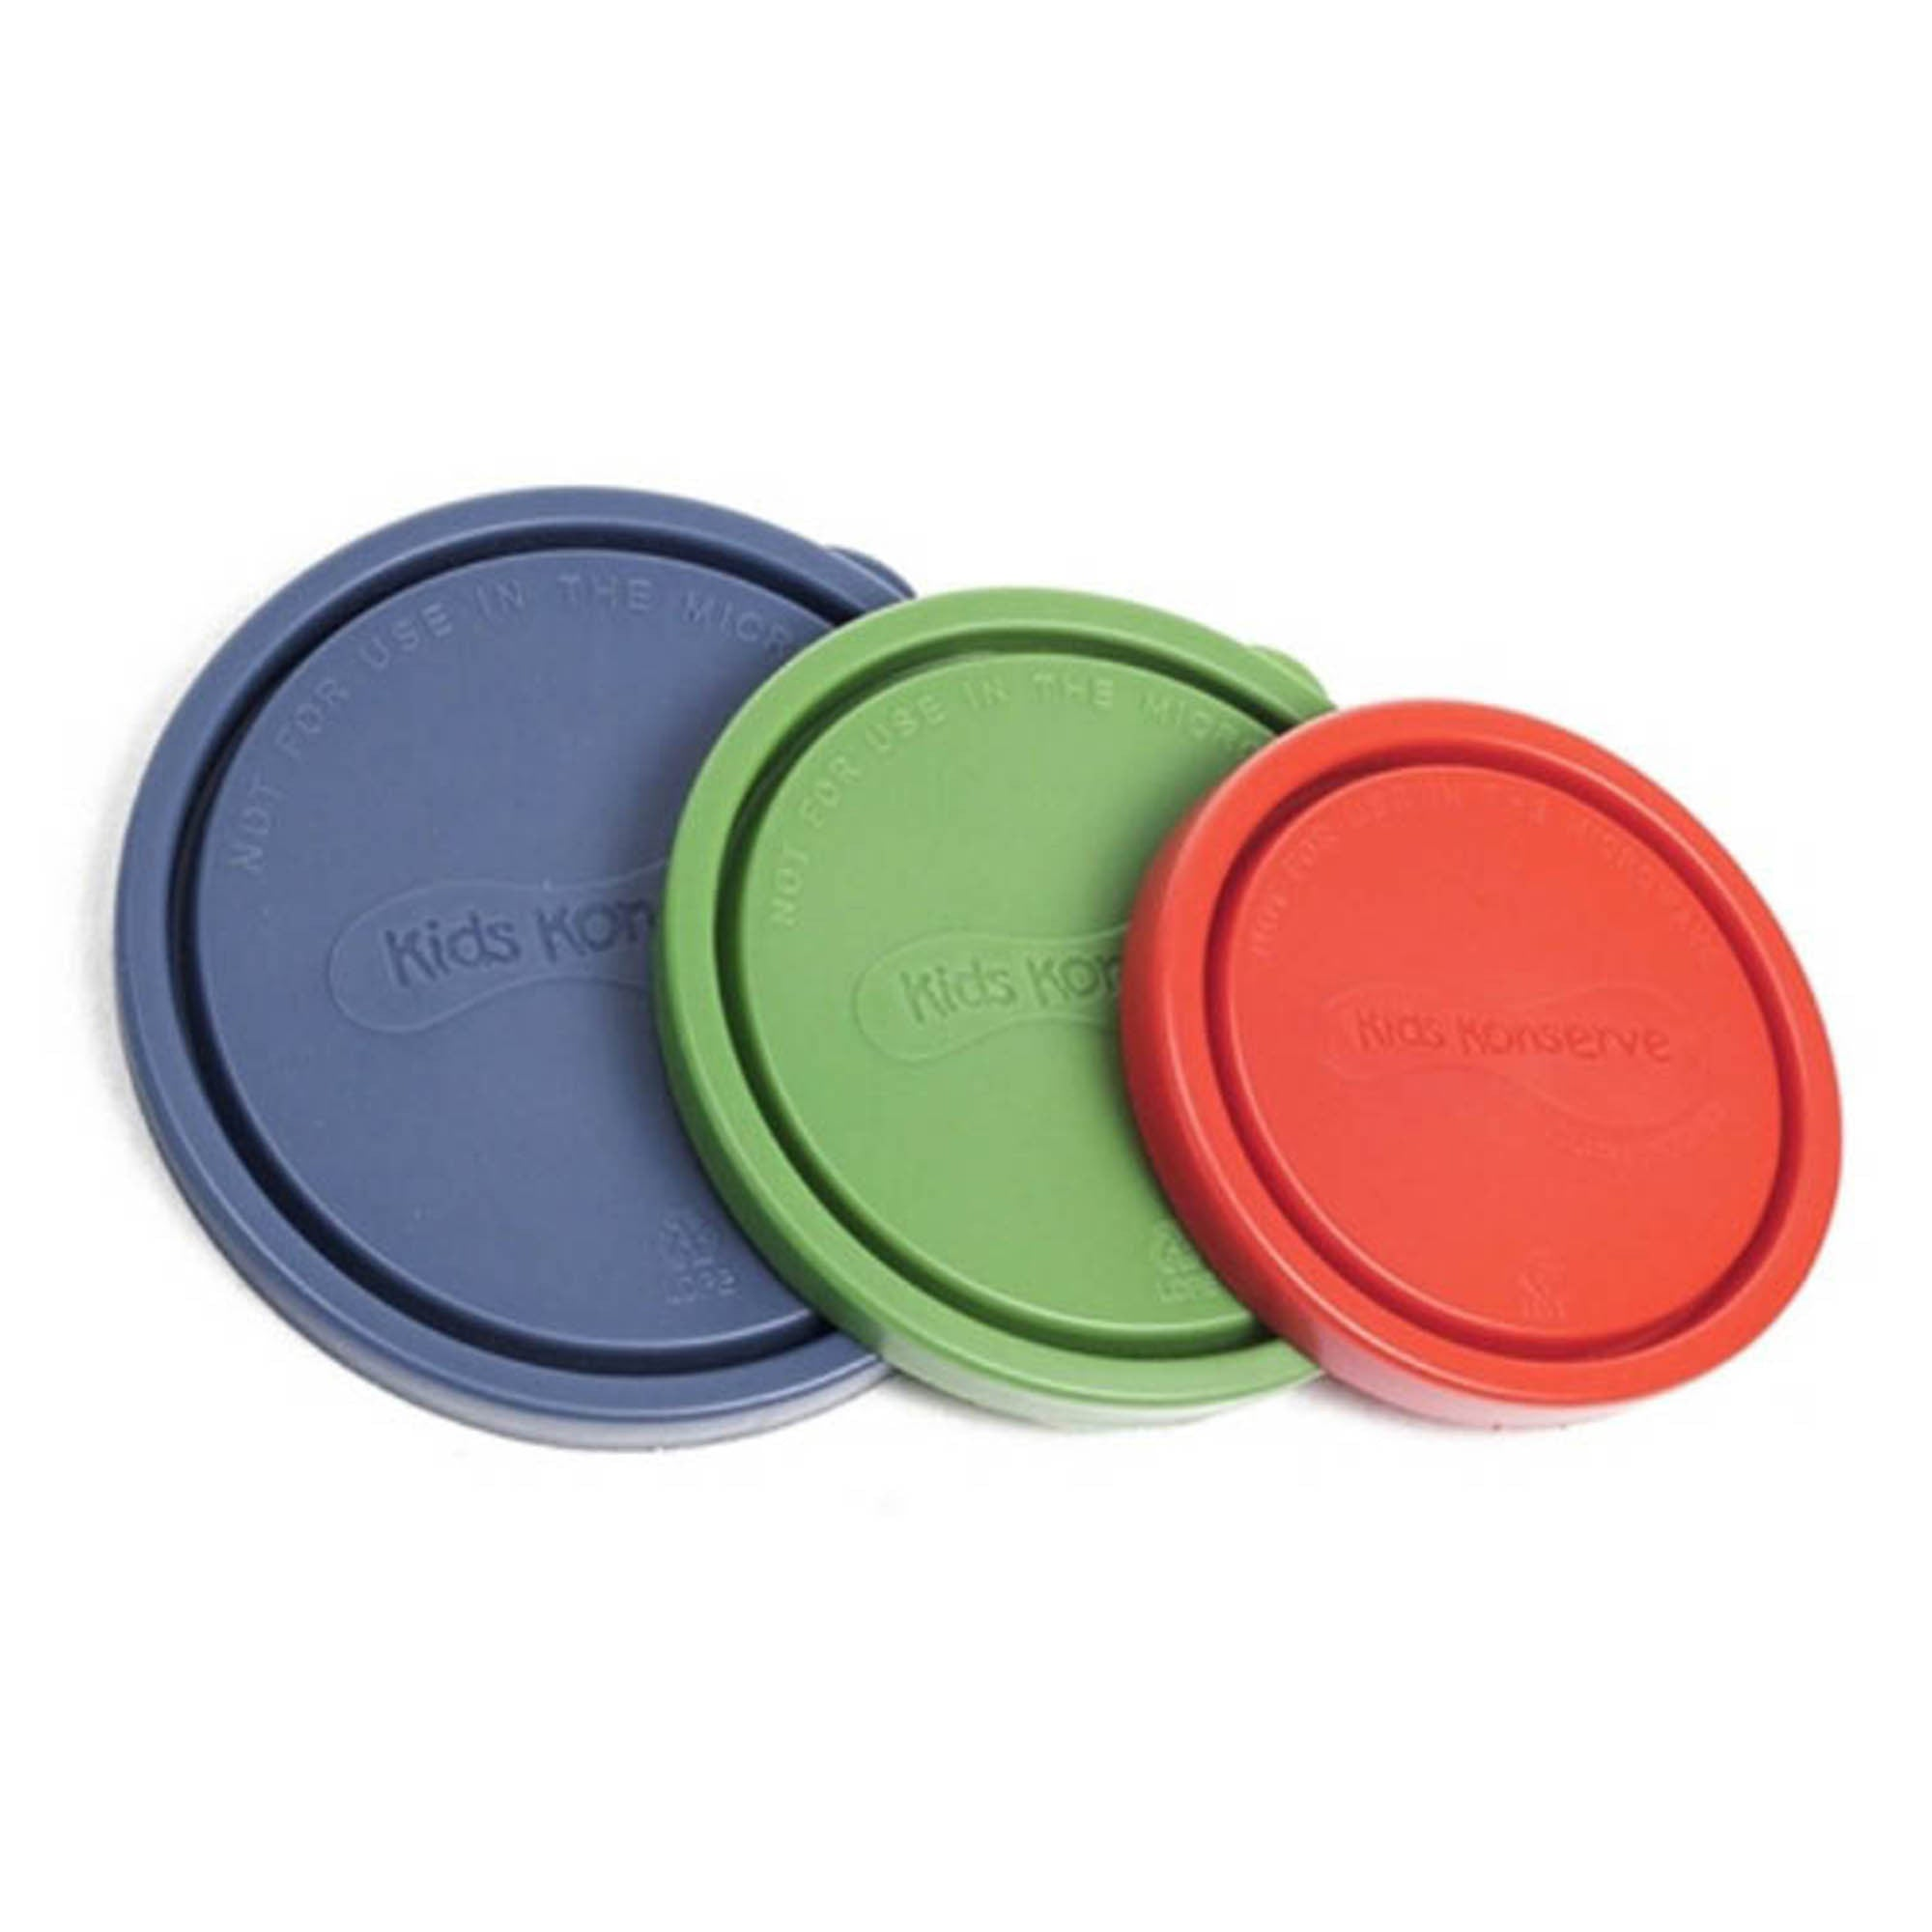 Kids Konserve Stainless Nesting Trio Spare Lids Kids Konserve Food Container Covers Ocean at Little Earth Nest Eco Shop